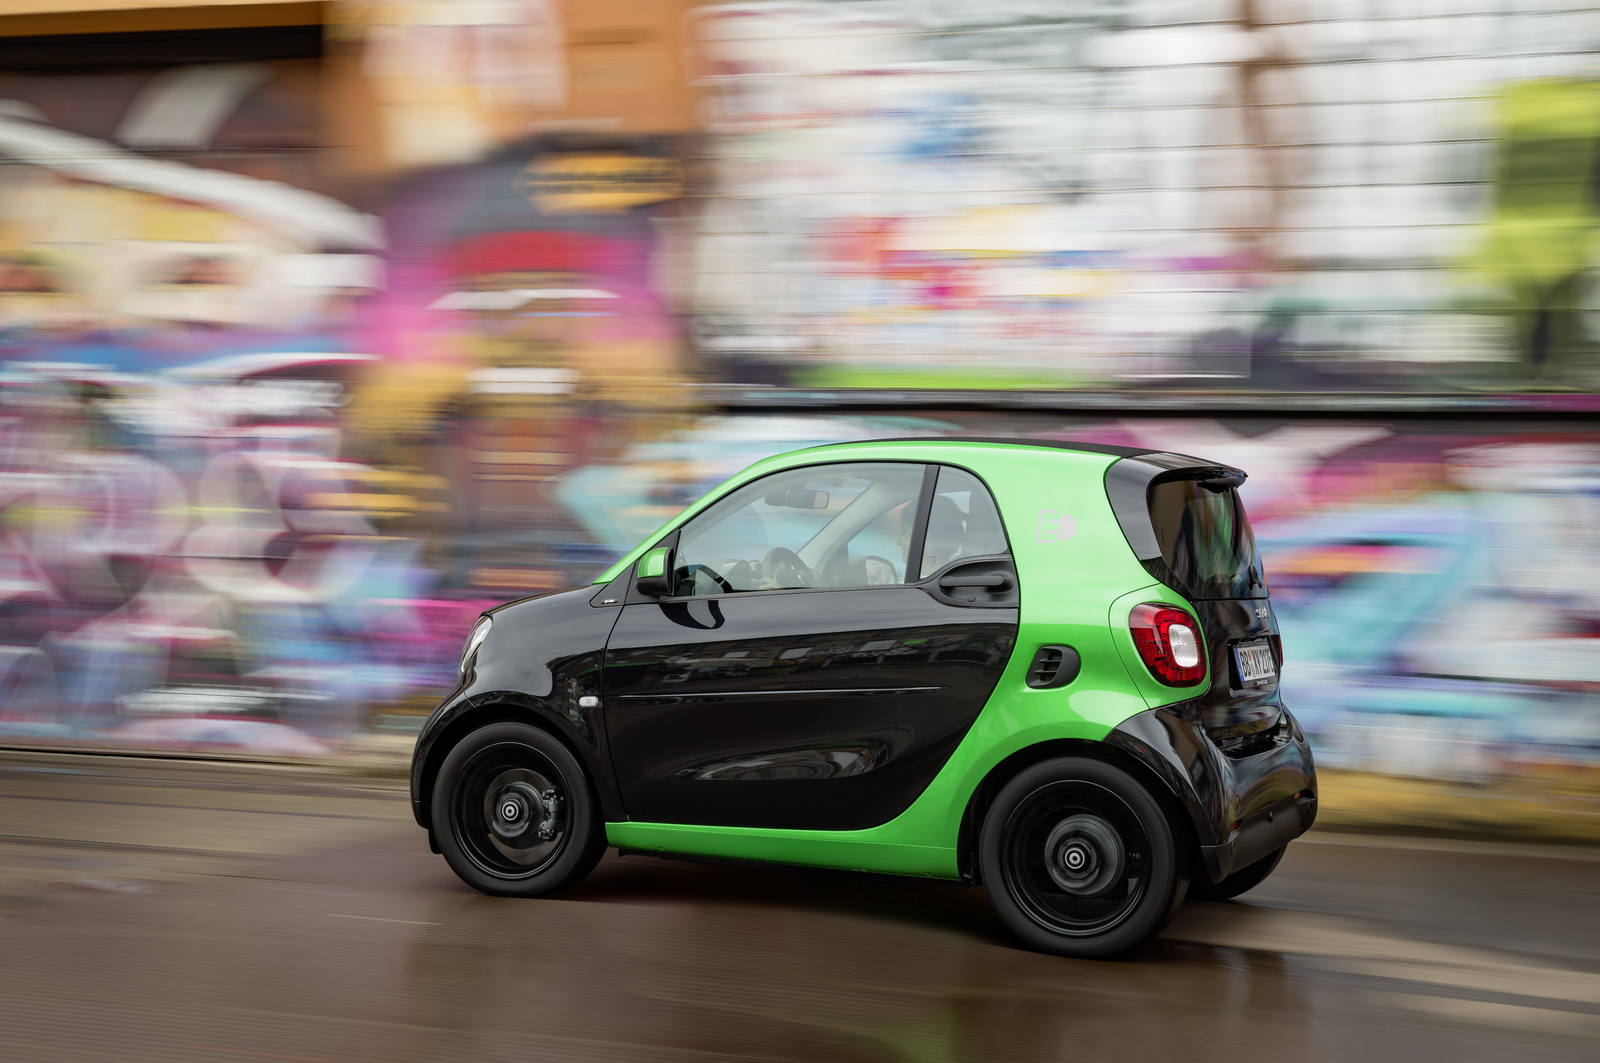 New All-Electric Smart Arrives In The UK With 100 Miles Of